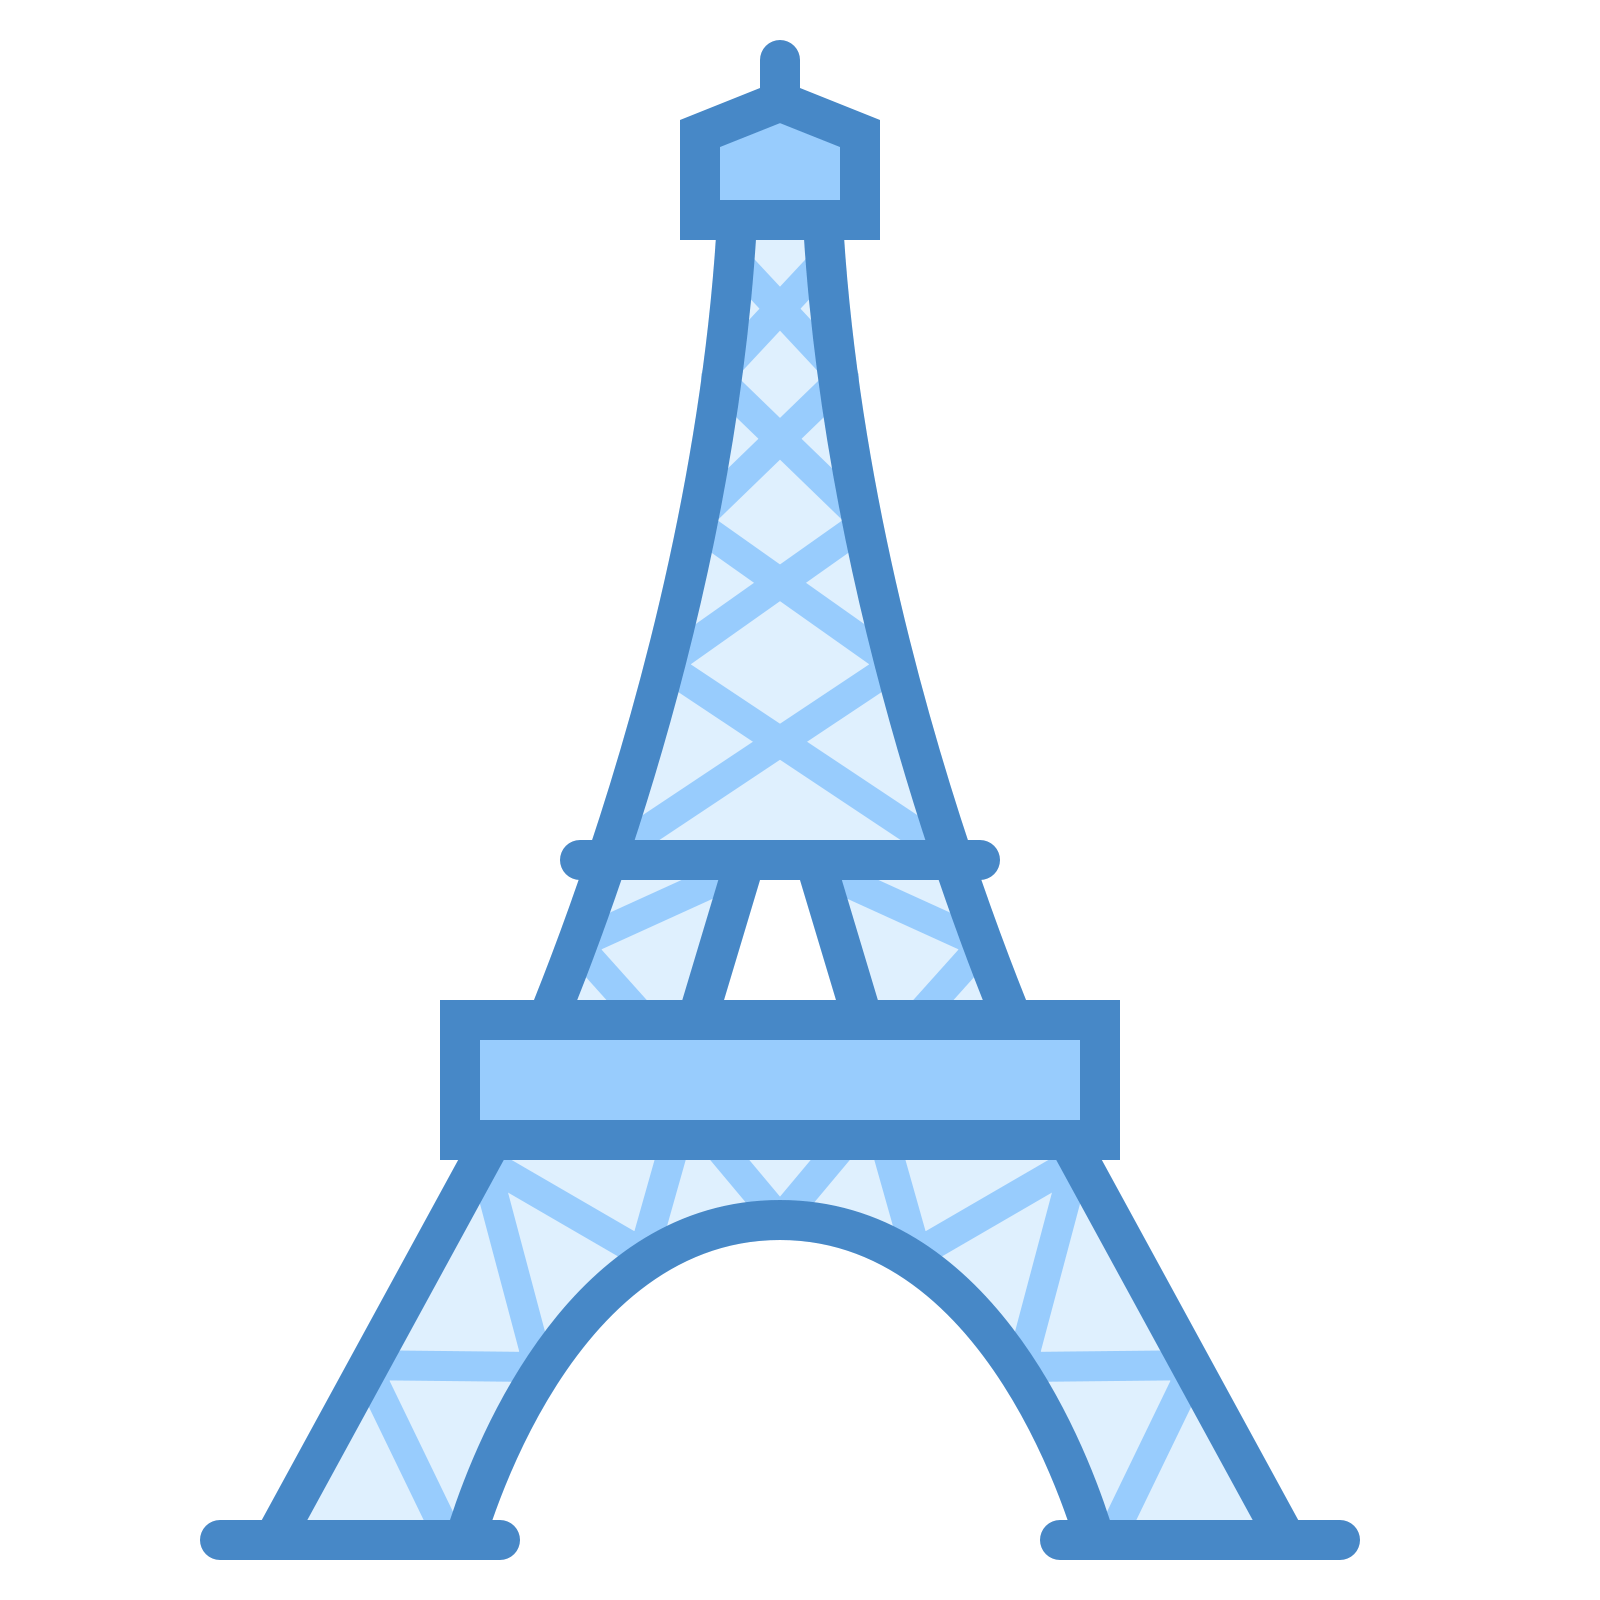 Eiffel Tower Png Images Free Download